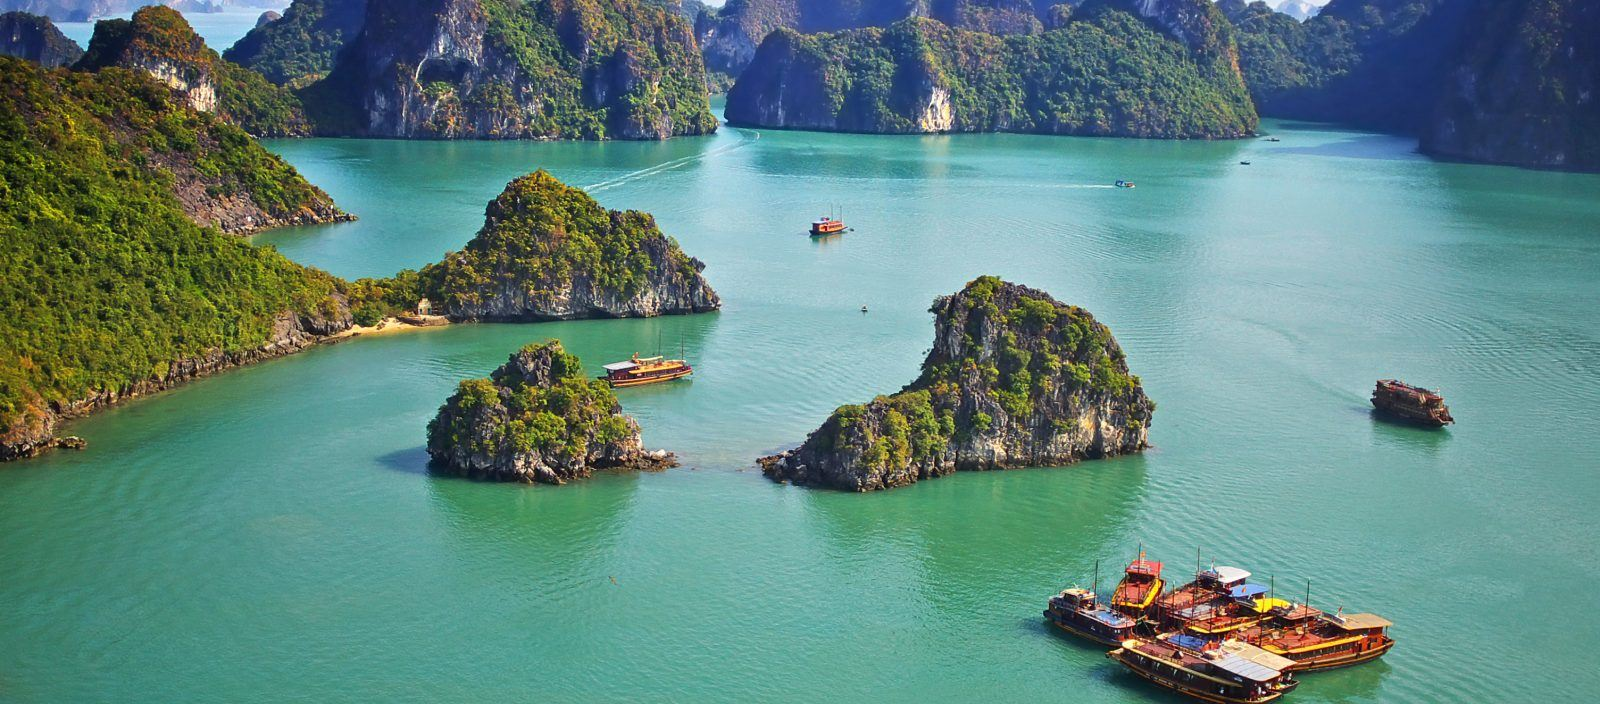 Vietnam, Laos, and Cambodia: Ancient Temples and Natural Wonders